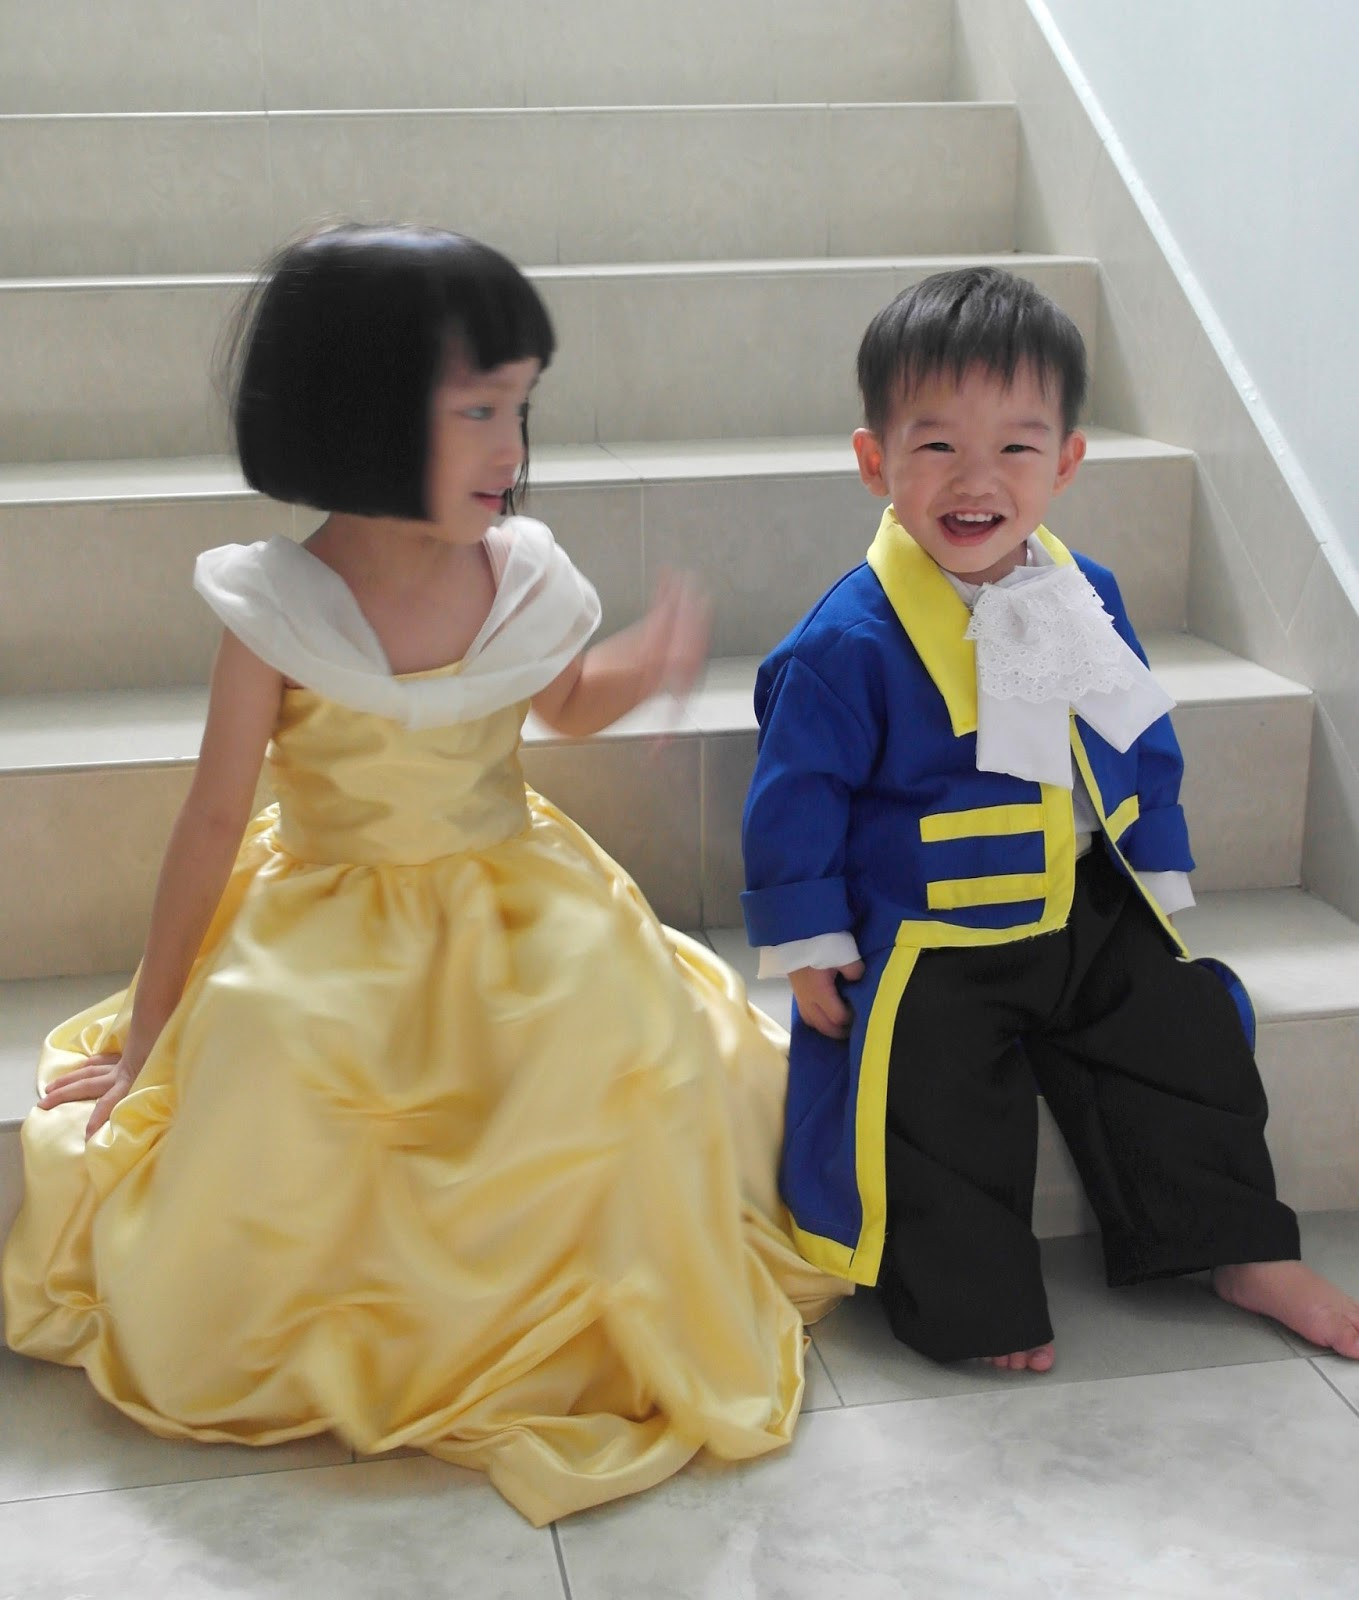 Best ideas about DIY Beauty And The Beast Costume . Save or Pin Fluene s Corner DIY Beast s Costume from Beauty and Now.